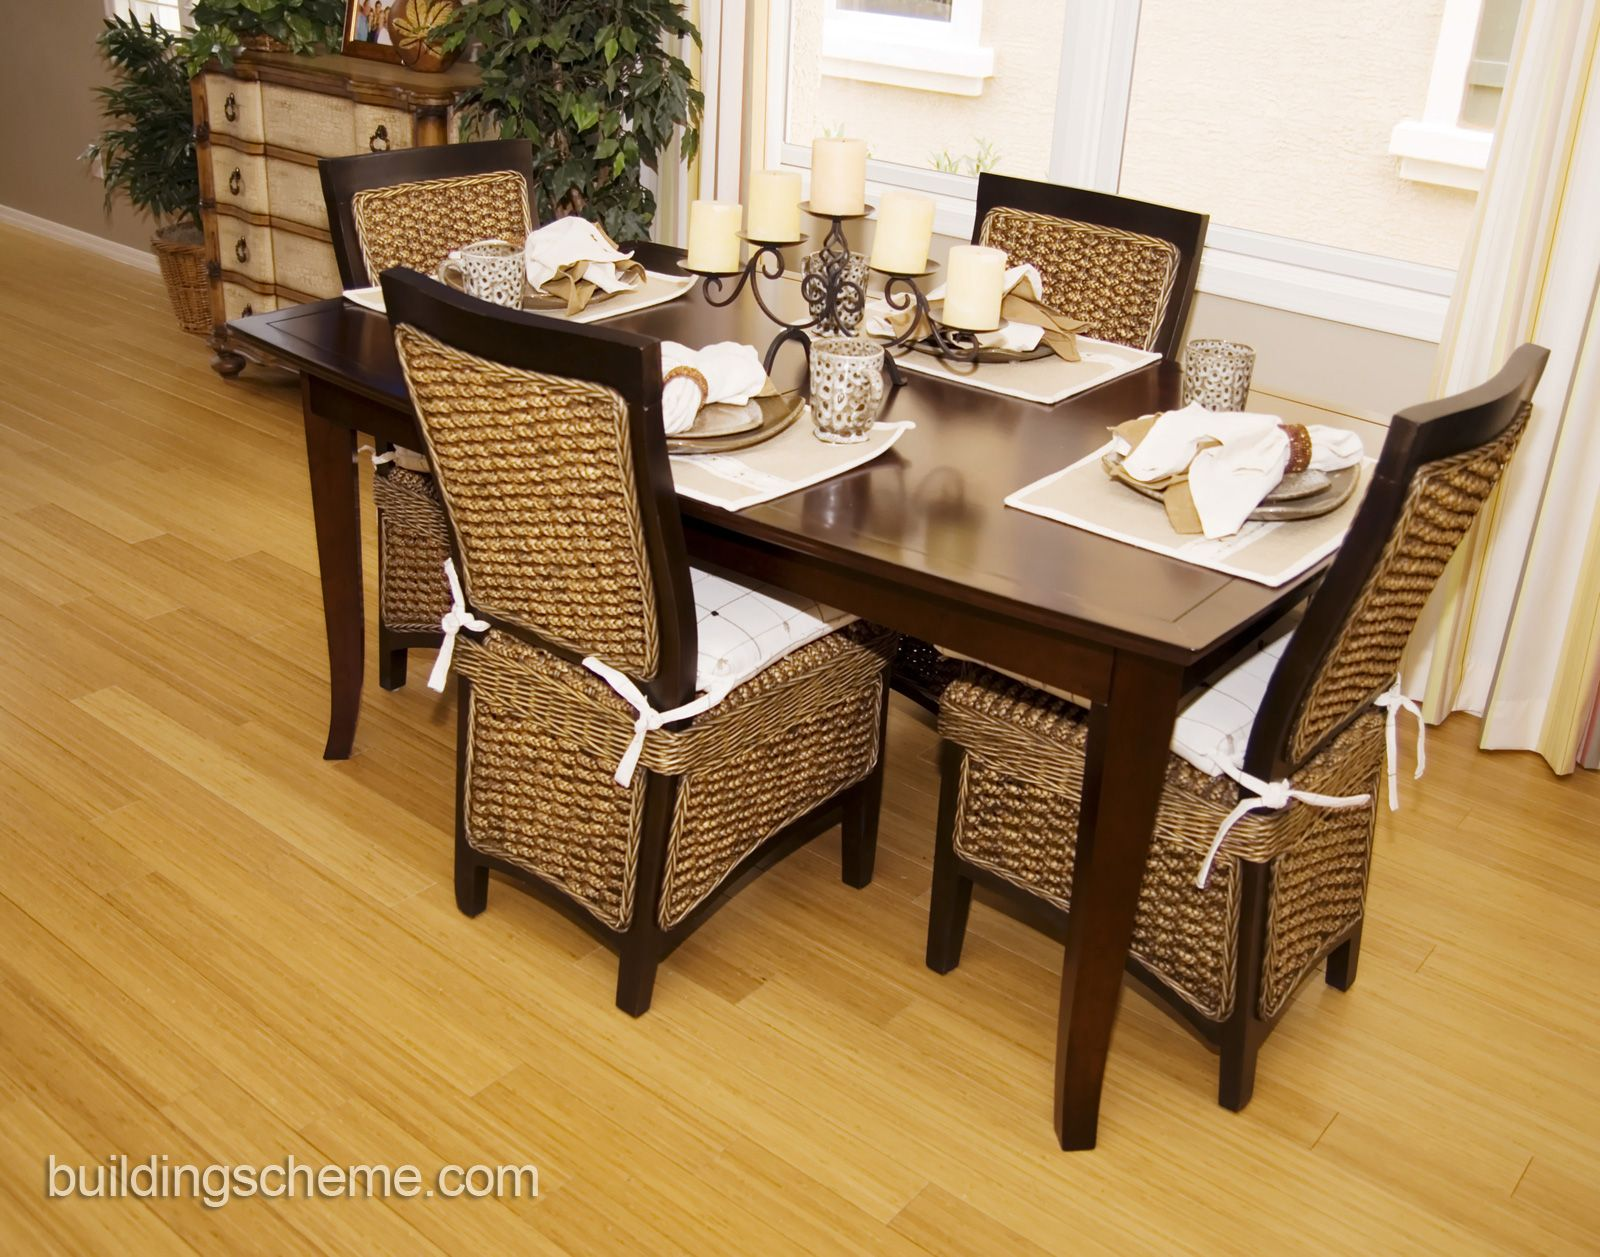 How To Reupholster A Dining Room Chair Beauteous Modern Dining Room Design With Mango Wood Dining Chairs And Glass Decorating Design